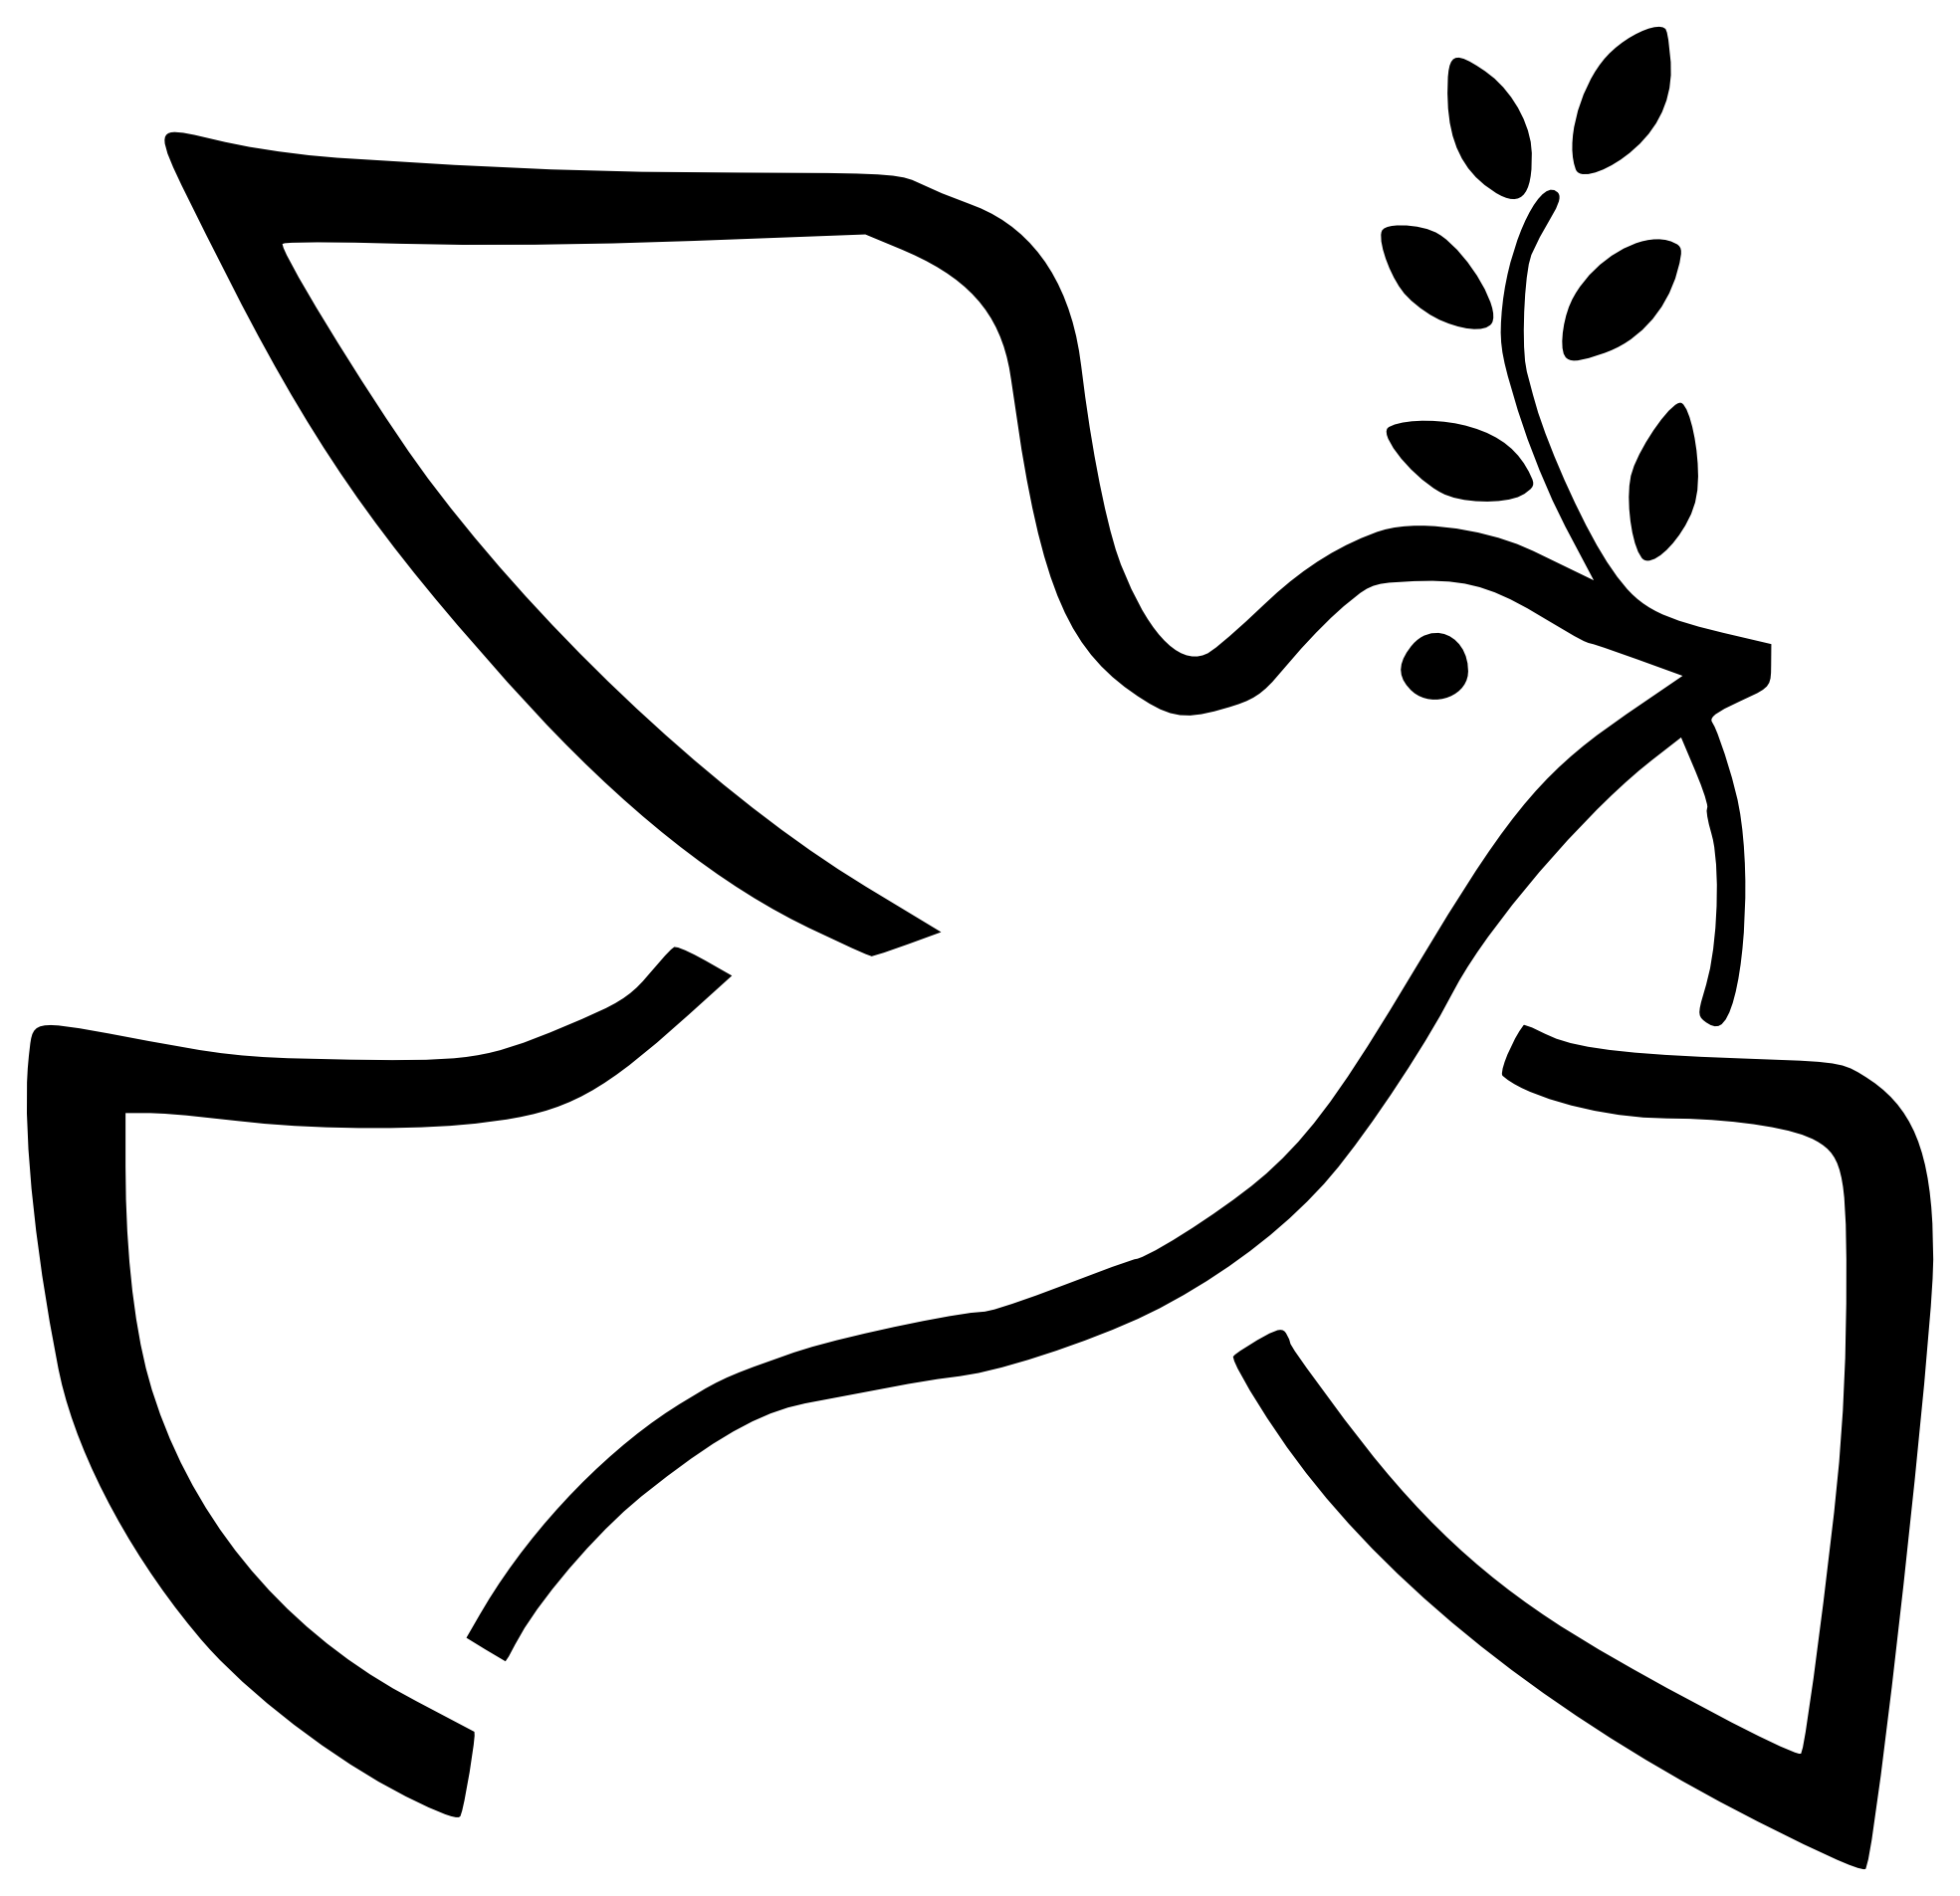 Clipart anchor traceable. Peace dove kid sunday